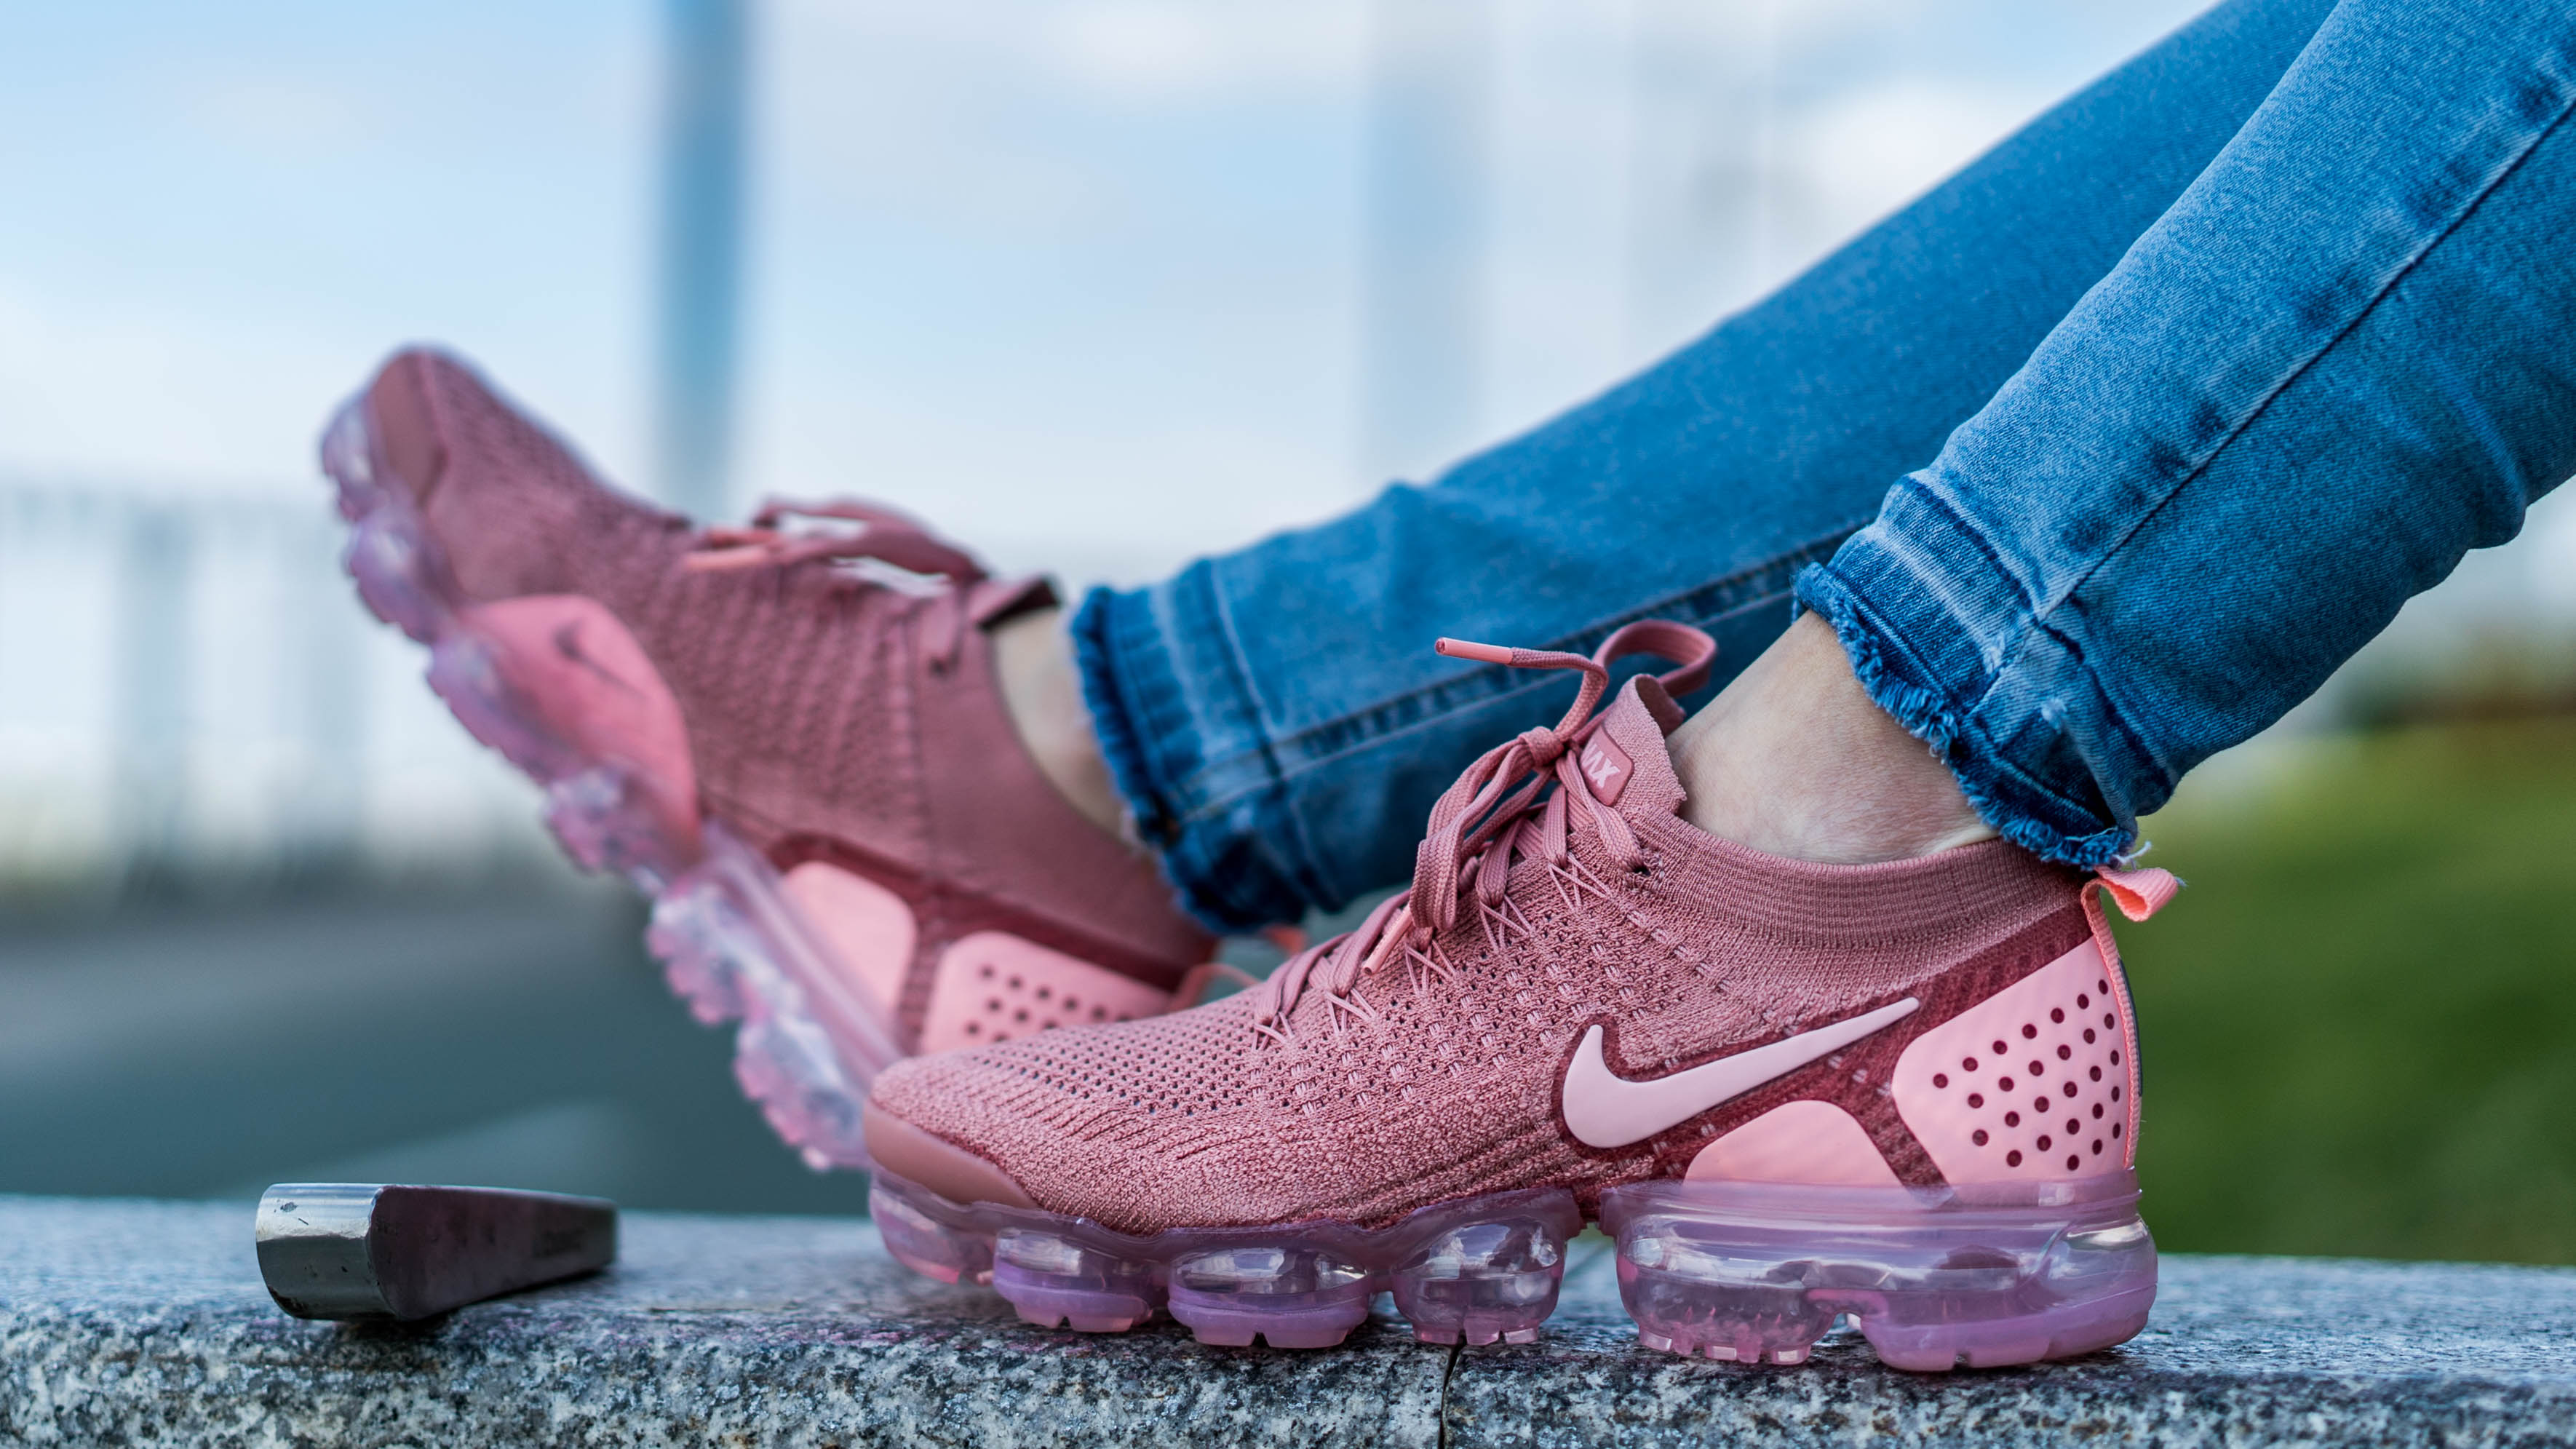 9f8247cbe5b41 An Exclusive On Foot Look At The Nike Air VaporMax Flyknit 2 In Rust ...